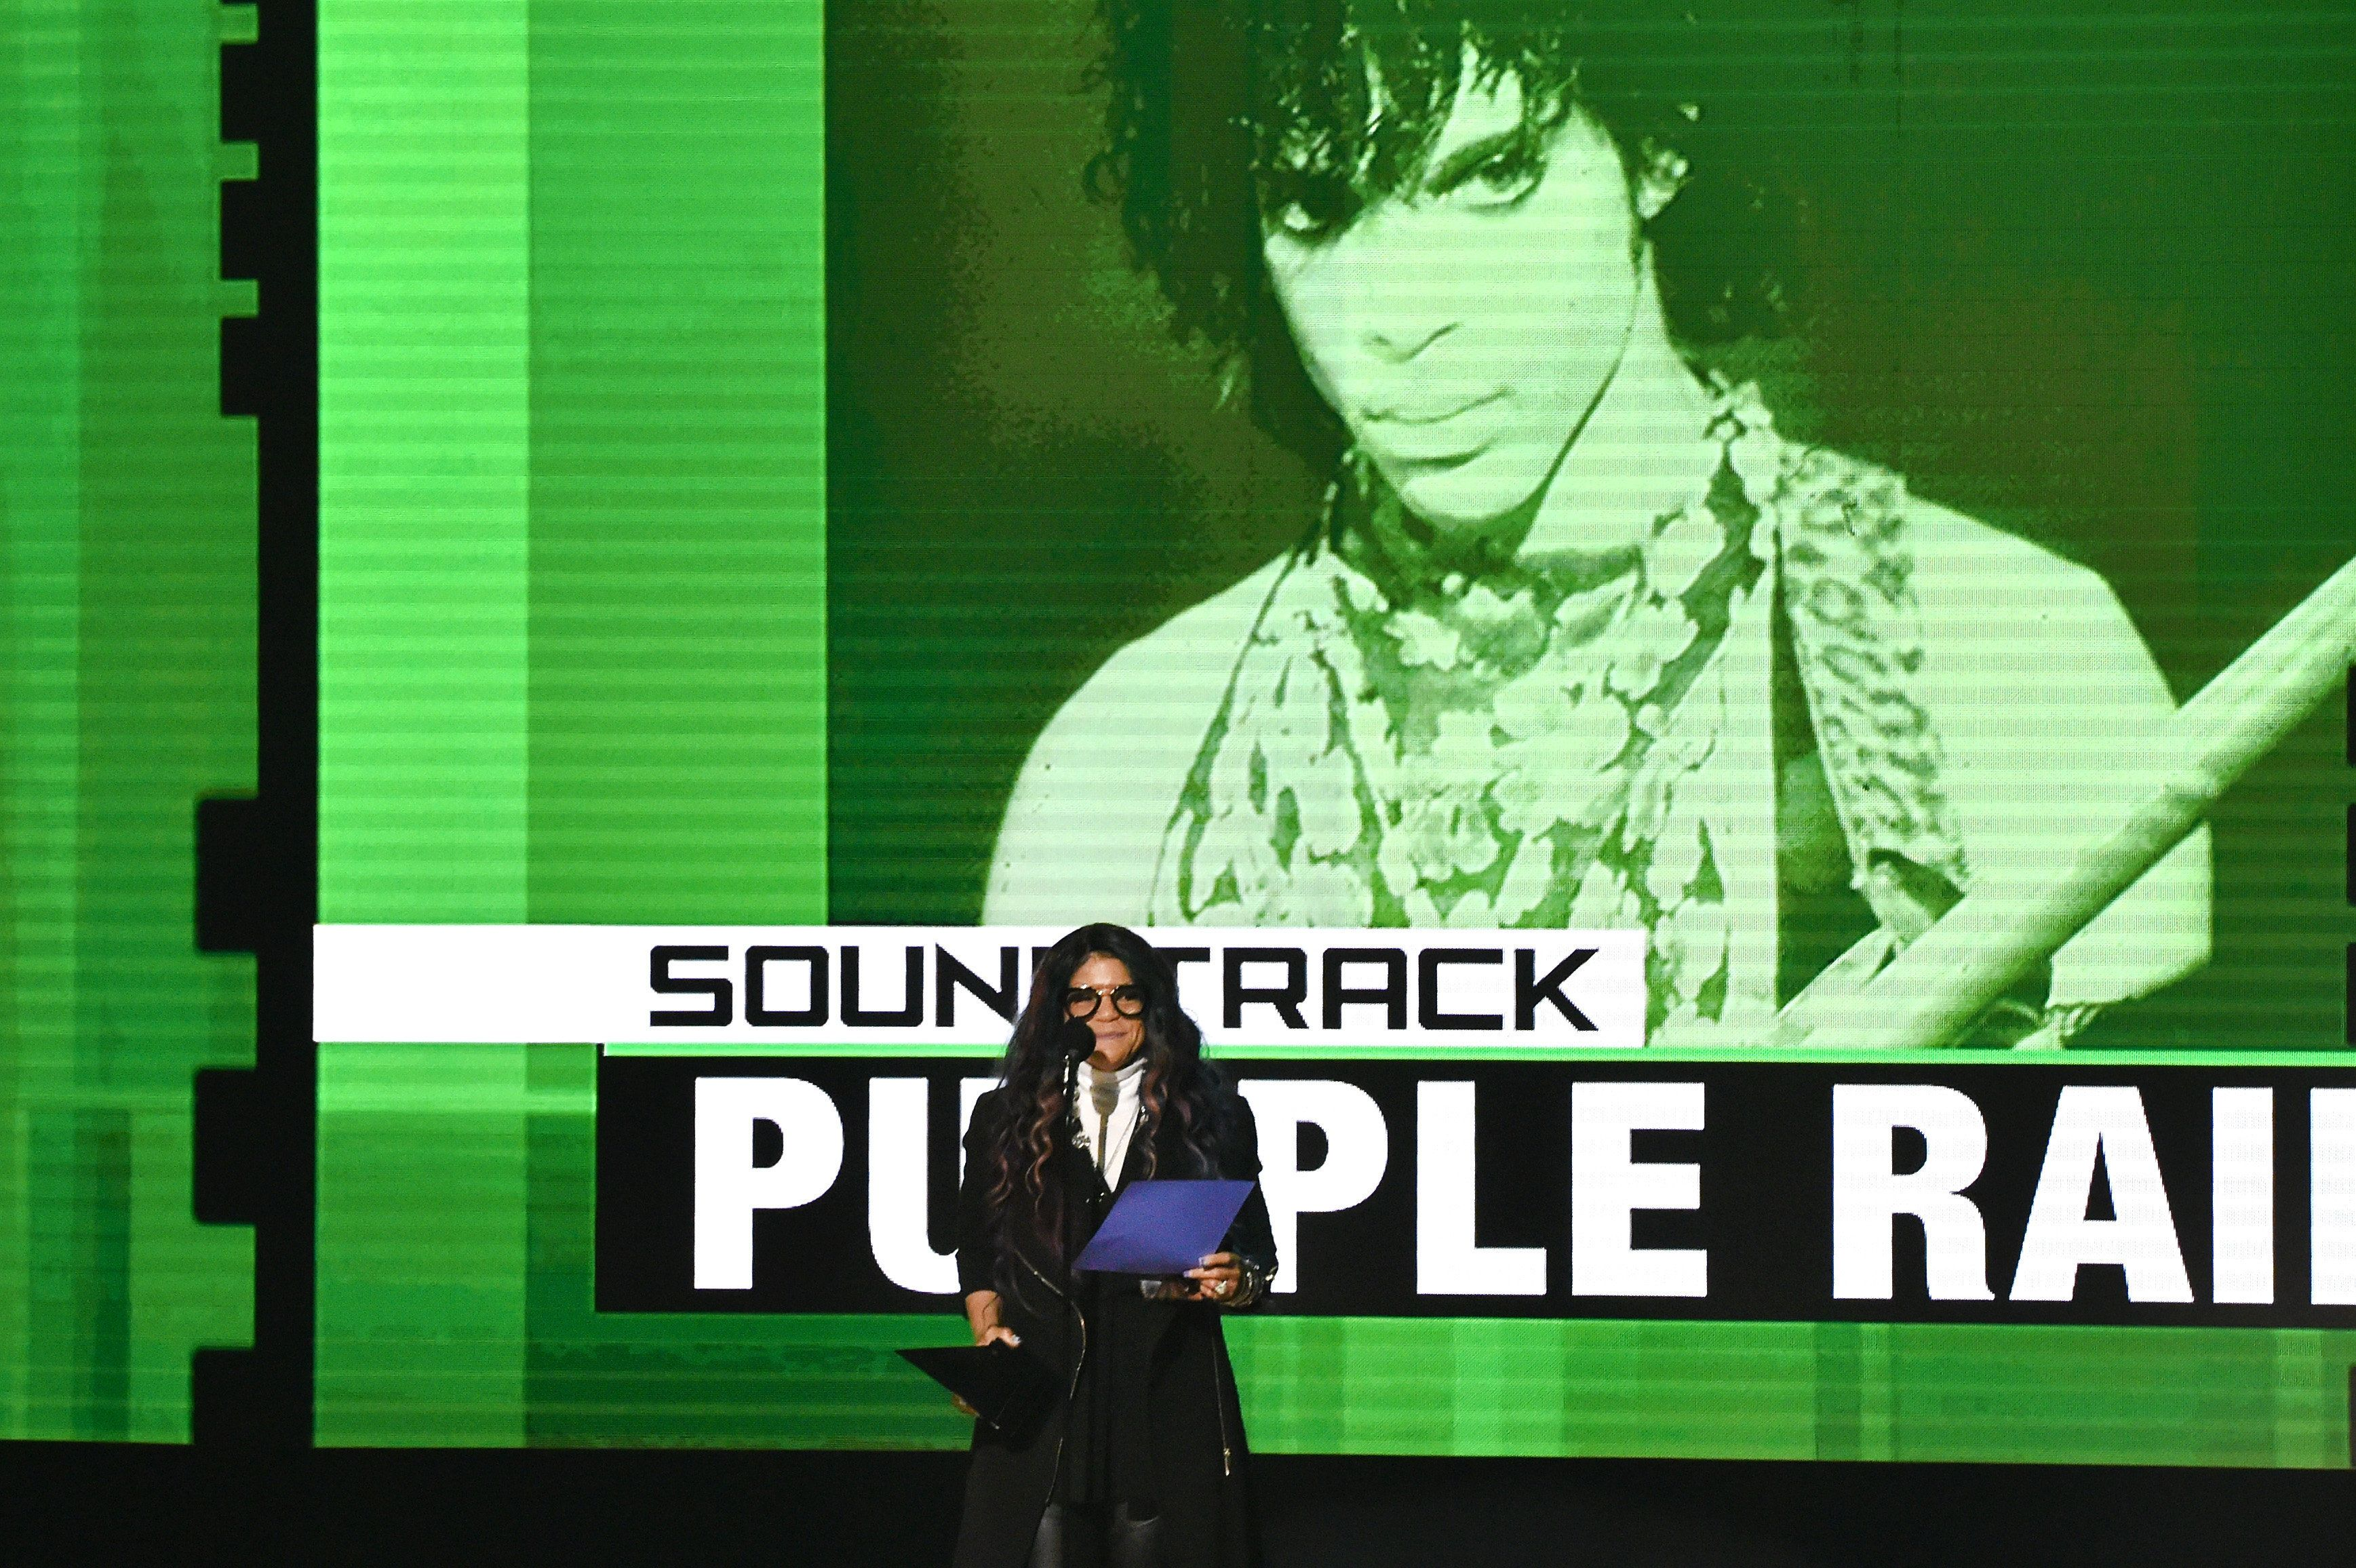 LOS ANGELES, CA - NOVEMBER 20:  Tyka Nelson, accepts the award for Favorite Soundtrack, for Purple Rain, on behalf of Prince onstage at the 2016 American Music Awards at Microsoft Theater on November 20, 2016 in Los Angeles, California.  (Photo by Lester Cohen/WireImage)